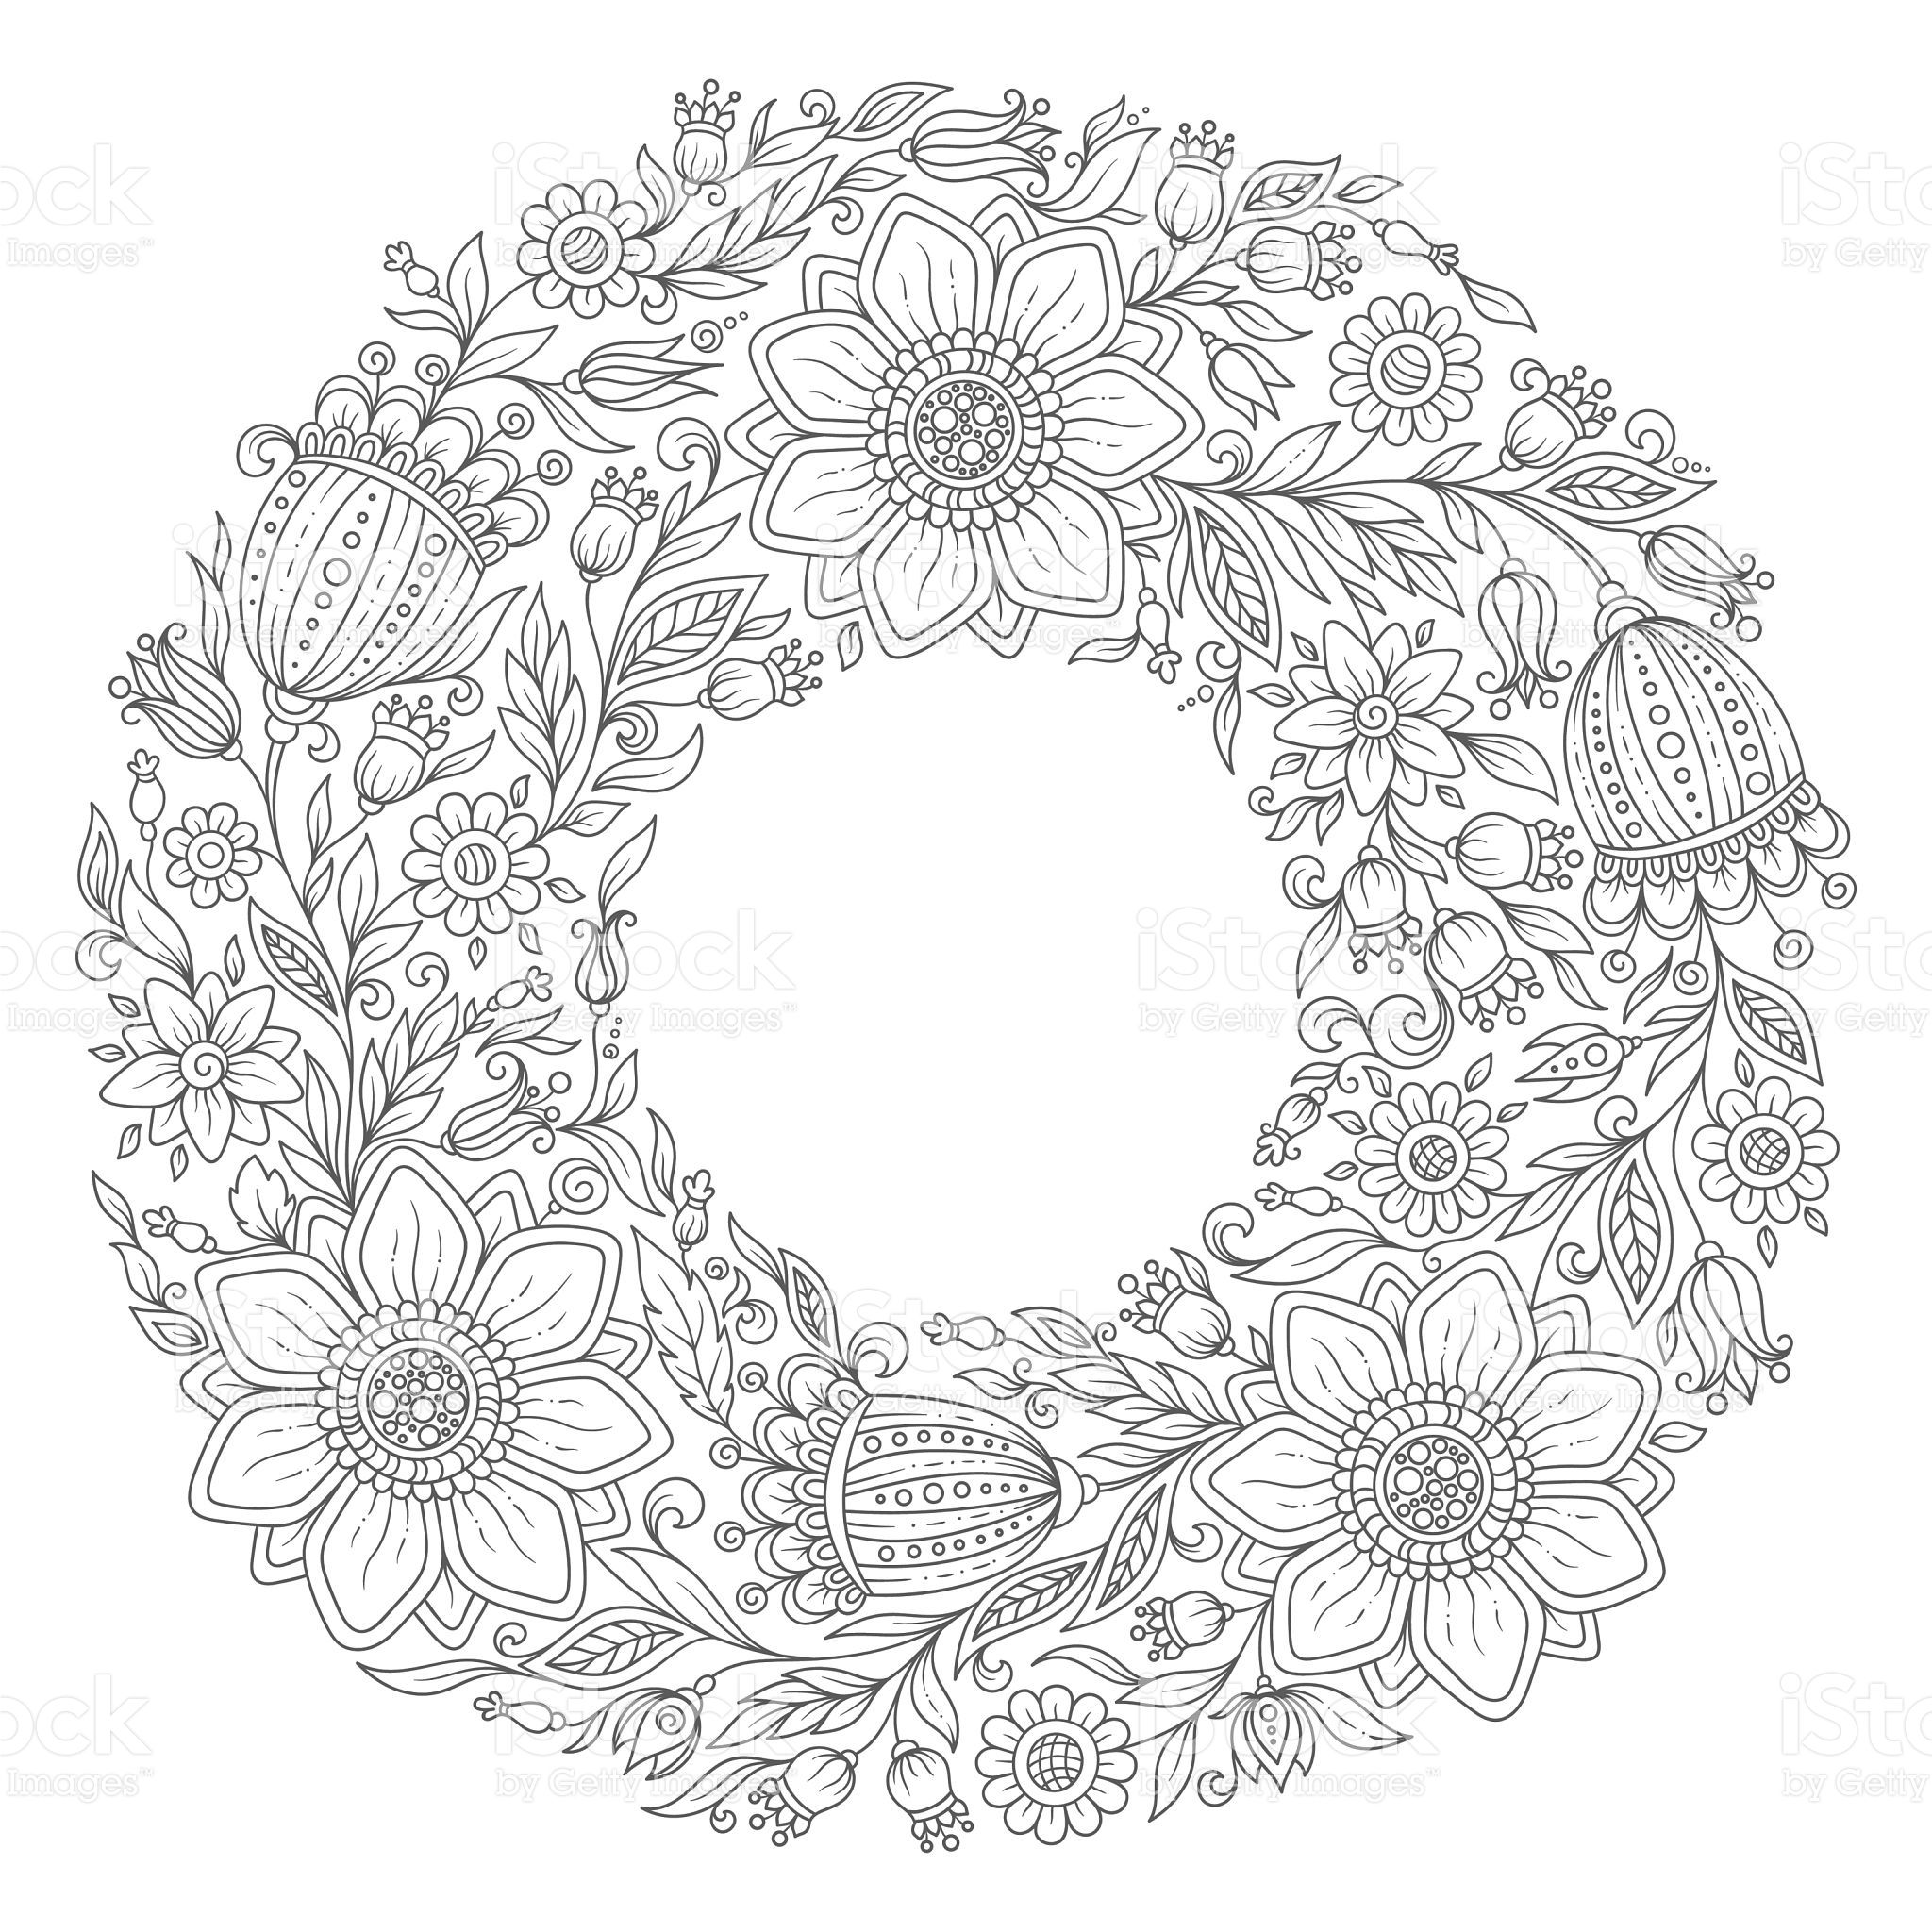 Flowers Wreath Coloring Book Page For Adult Vector Hand Drawn